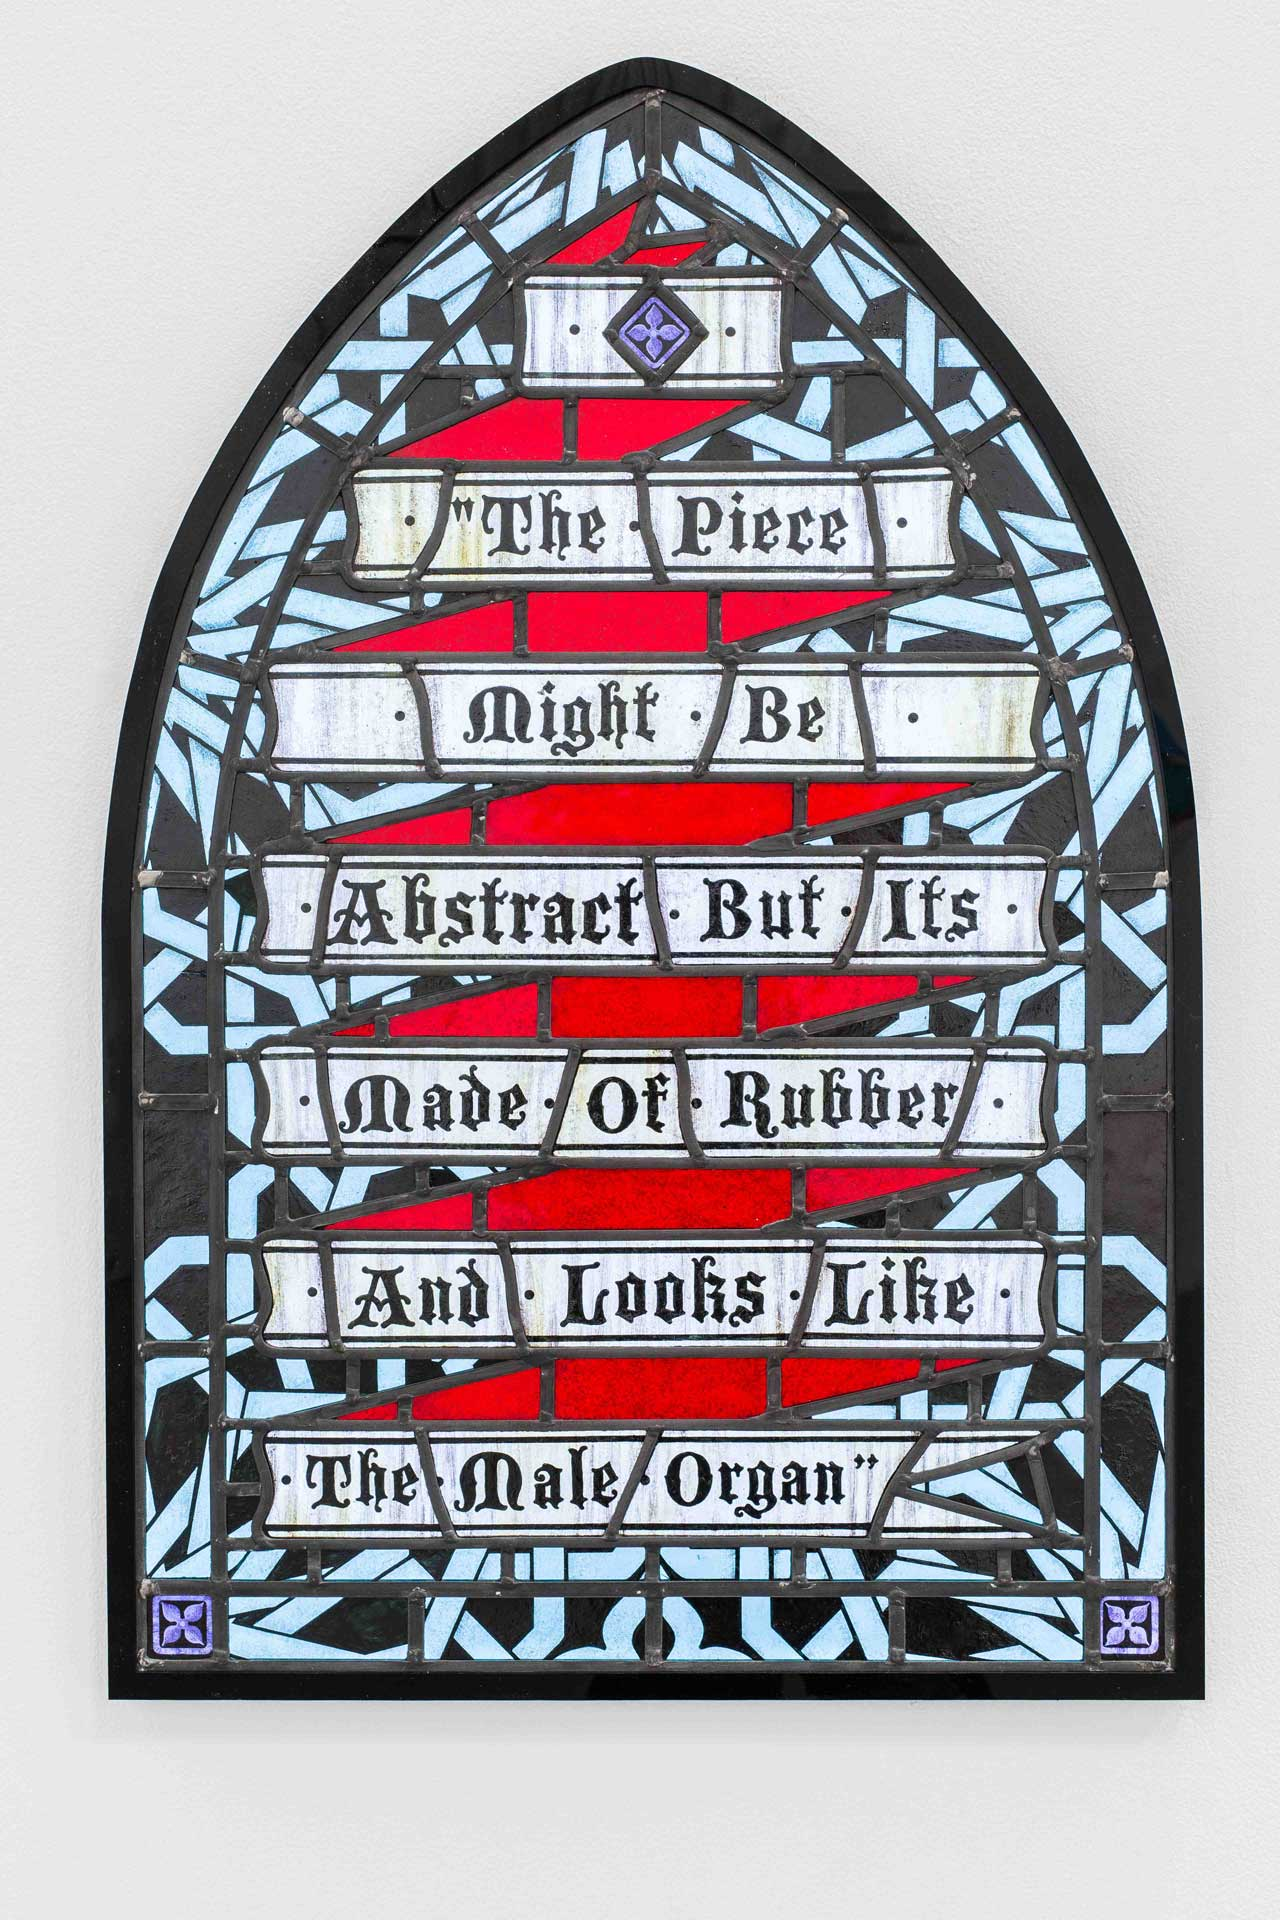 Hamra Abbas, 'The Piece Might Be Abstract, But its Made of Rubber and Looks Like the Male Organ', 2012, stained-glass, 90 x 60 cm, 35 3/8 x 23 5/8 in. Image courtesy Lawrie Shabibi, Dubai.